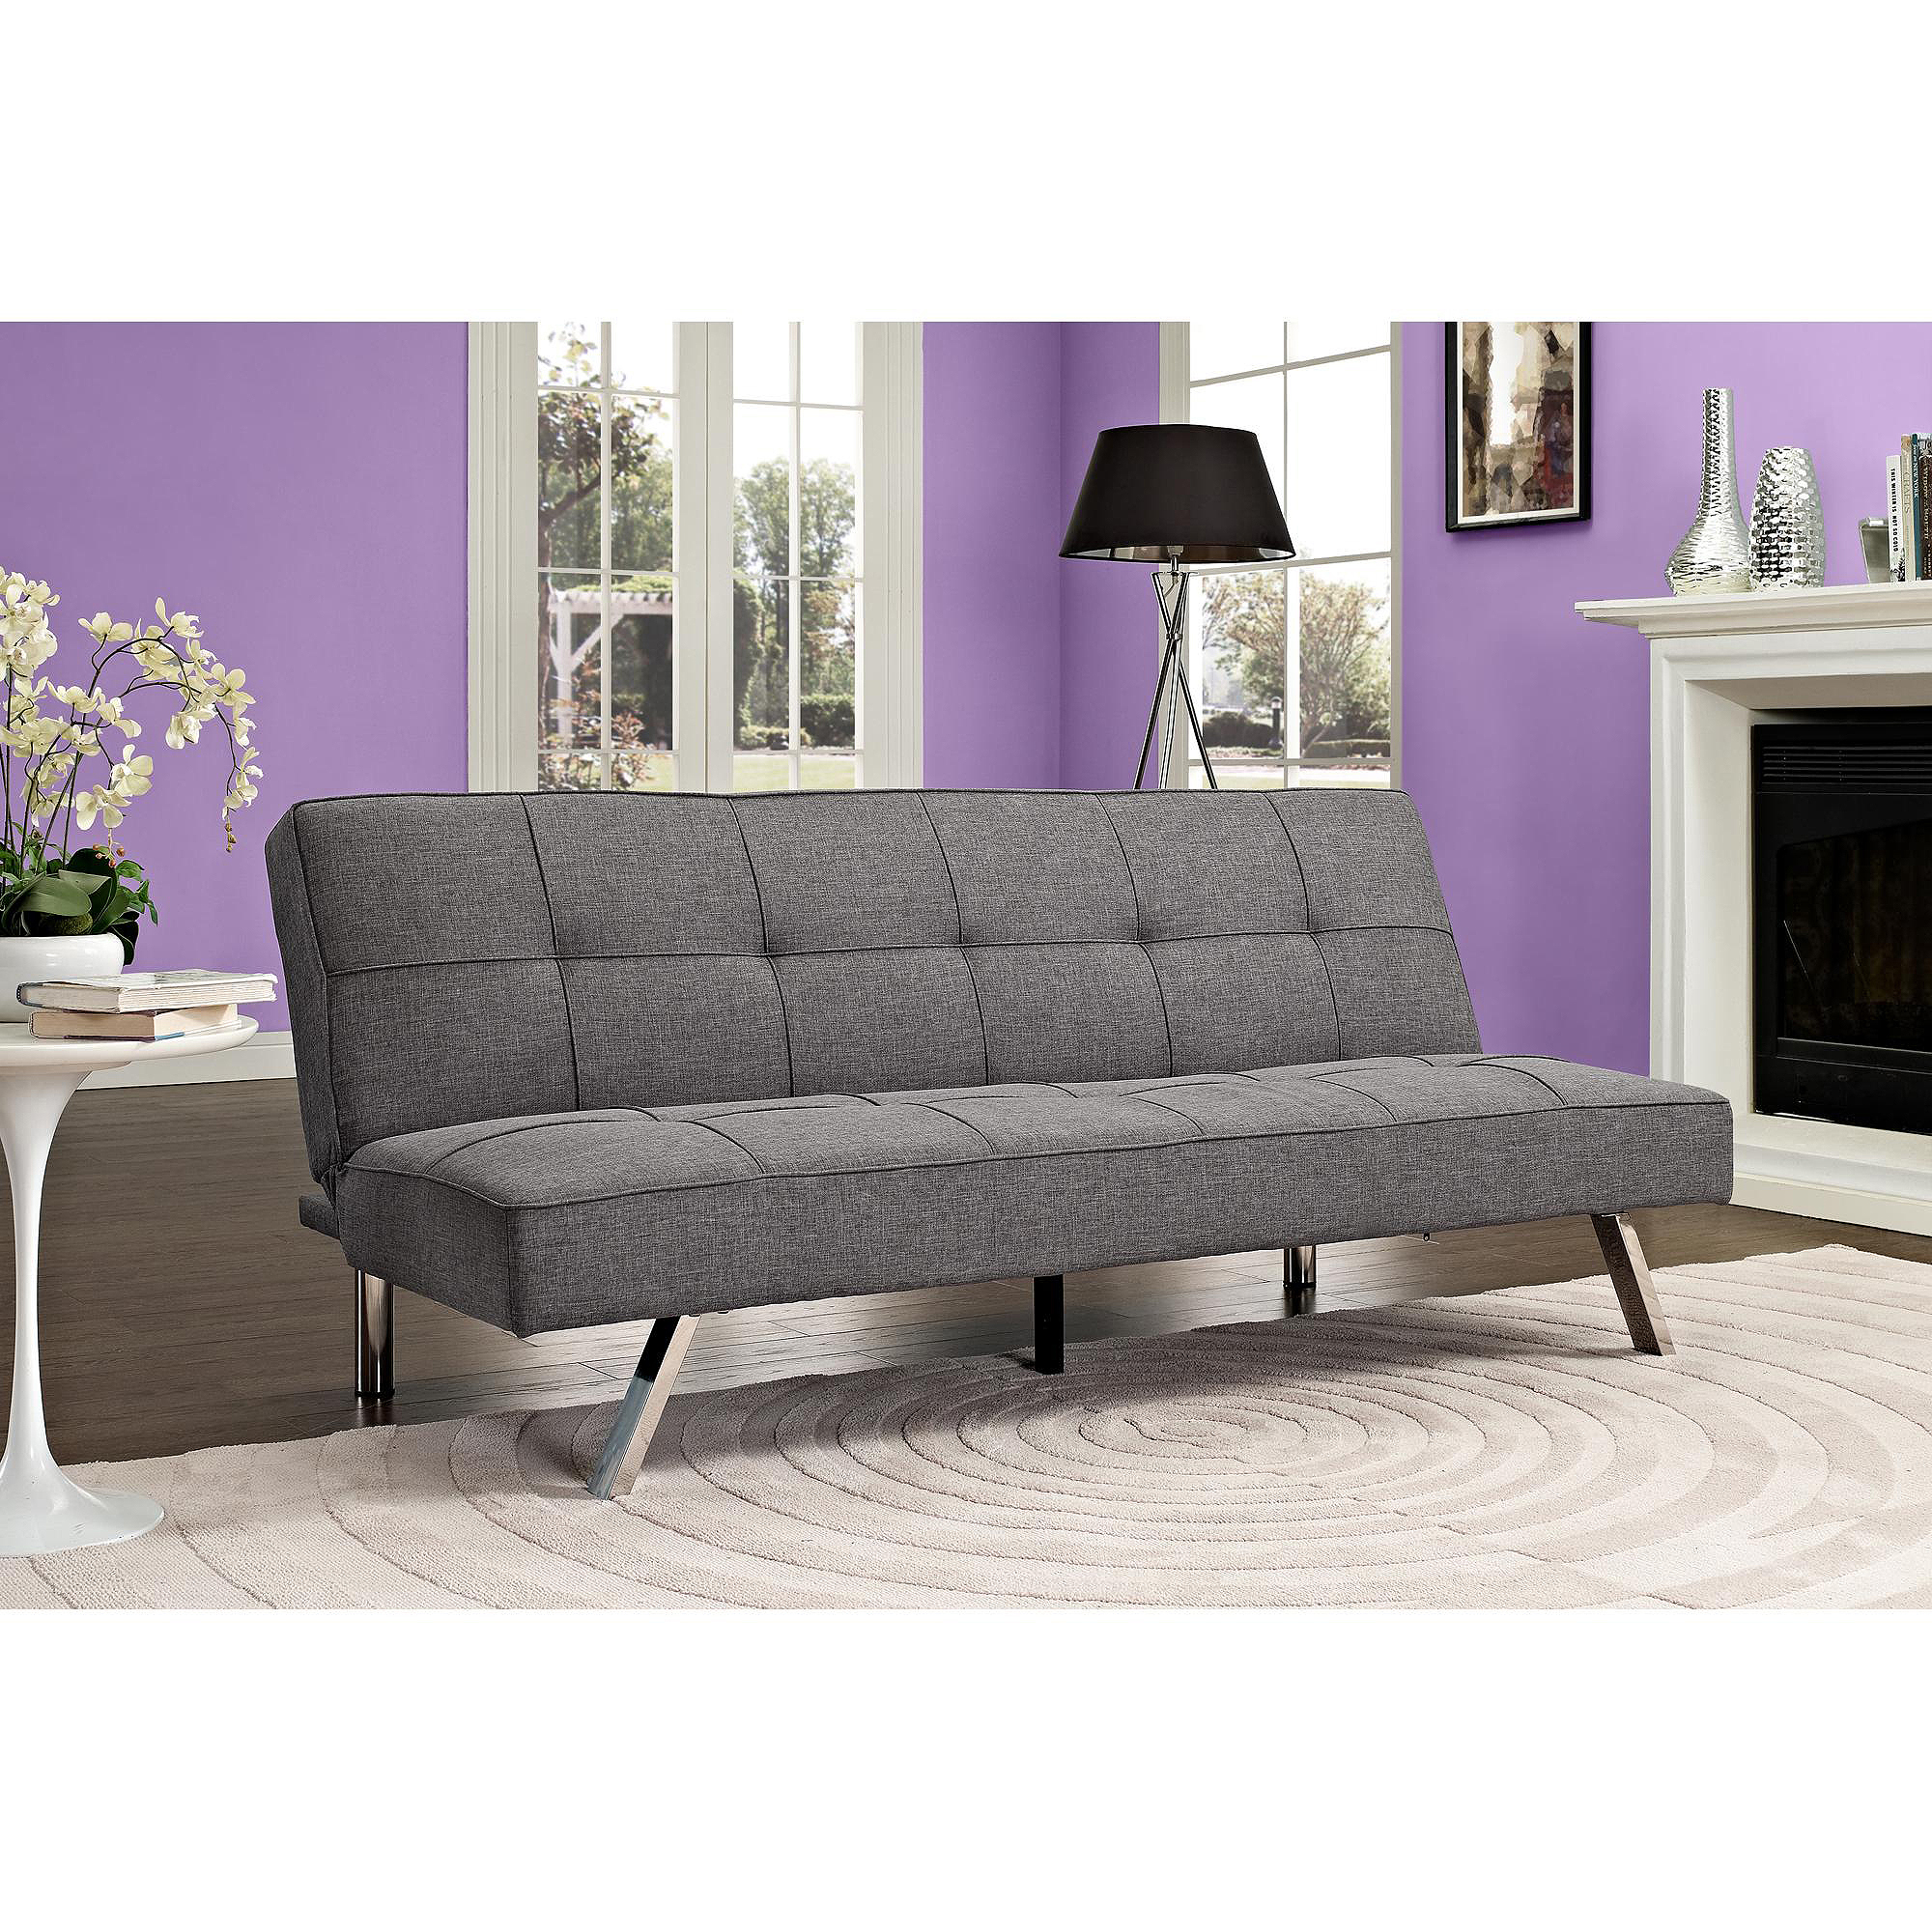 Zoe Convertible Linen Futon, Grey by Dorel Home Products